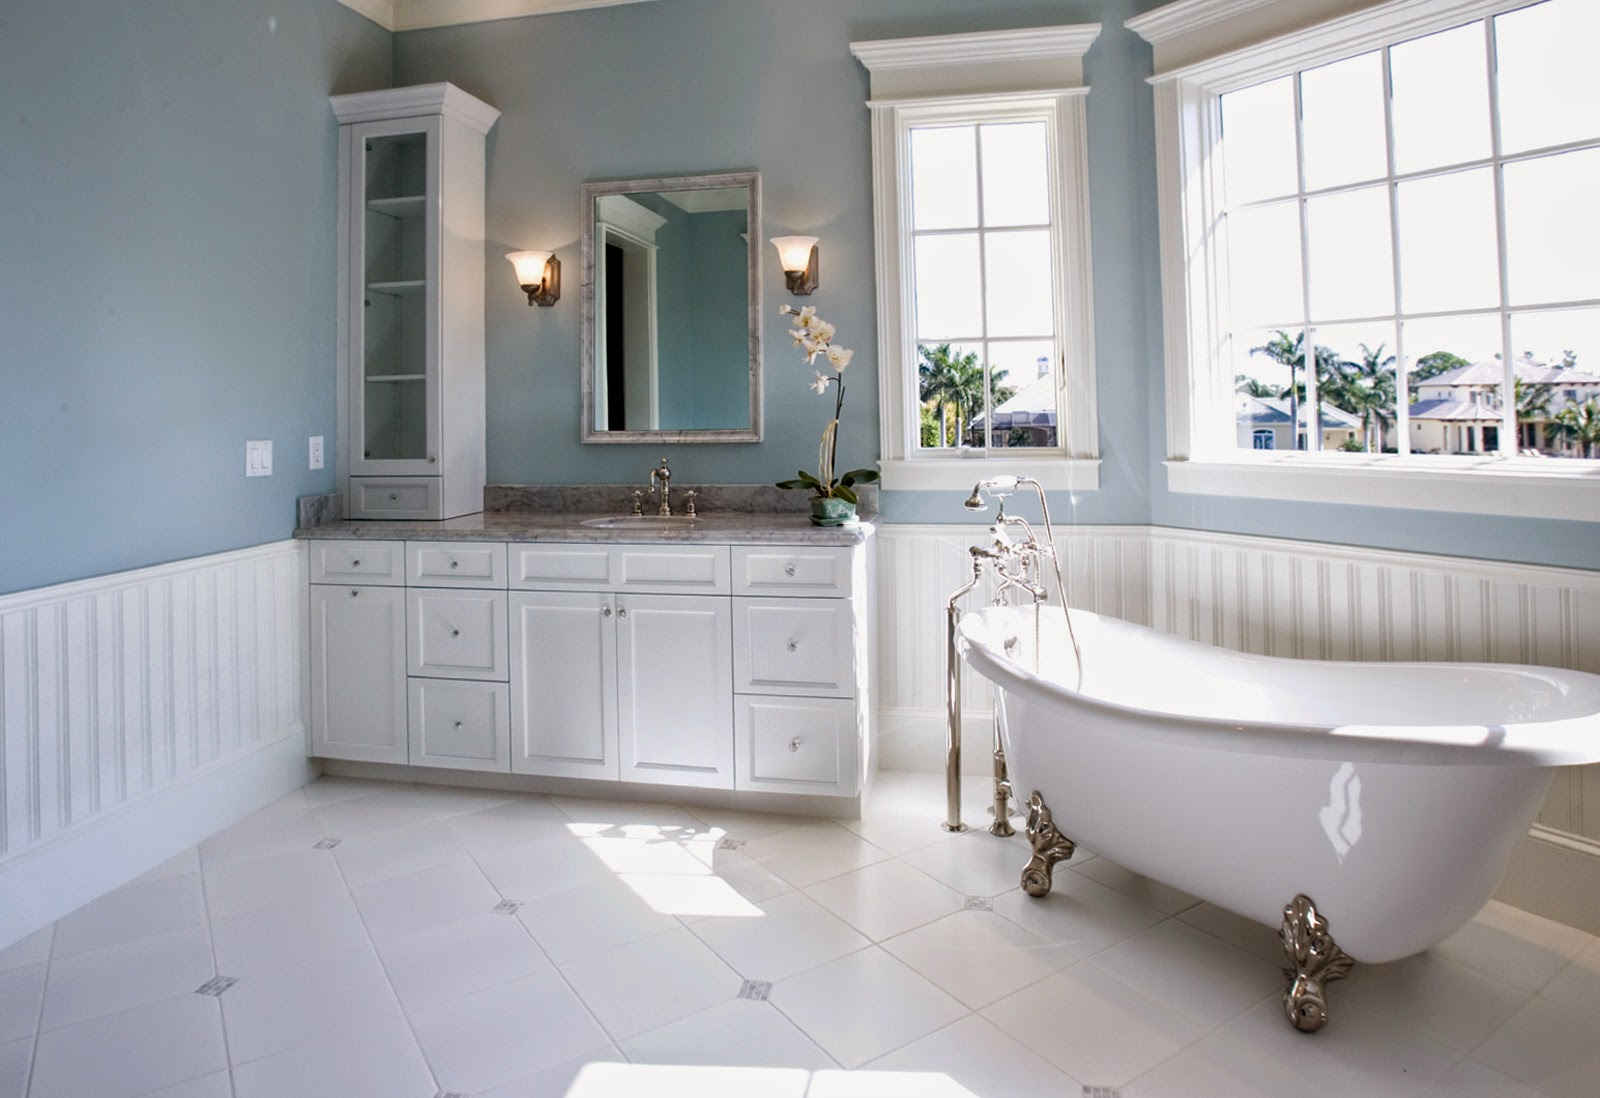 Top 10 beautiful bathroom design 2014 home interior blog Beautiful bathrooms and bedrooms magazine